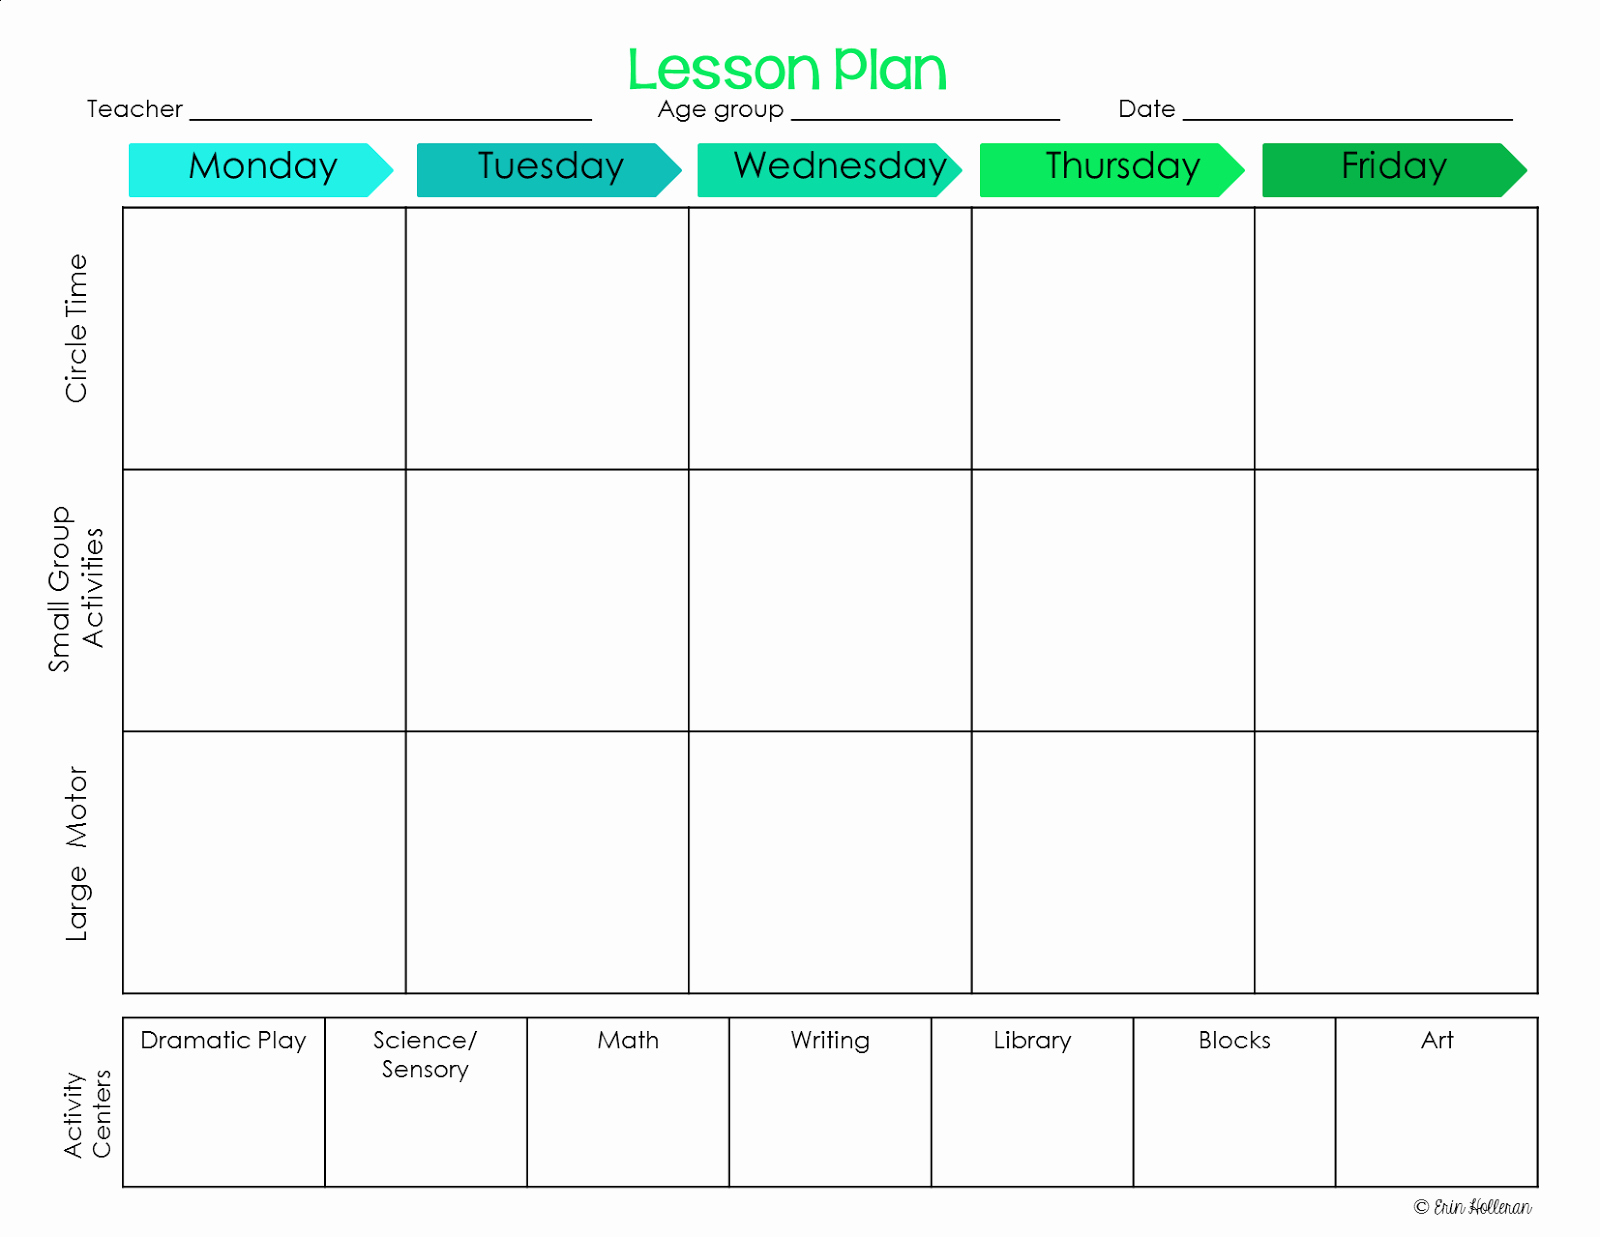 Free Weekly Lesson Plan Template Luxury Preschool Ponderings Make Your Lesson Plans Work for You